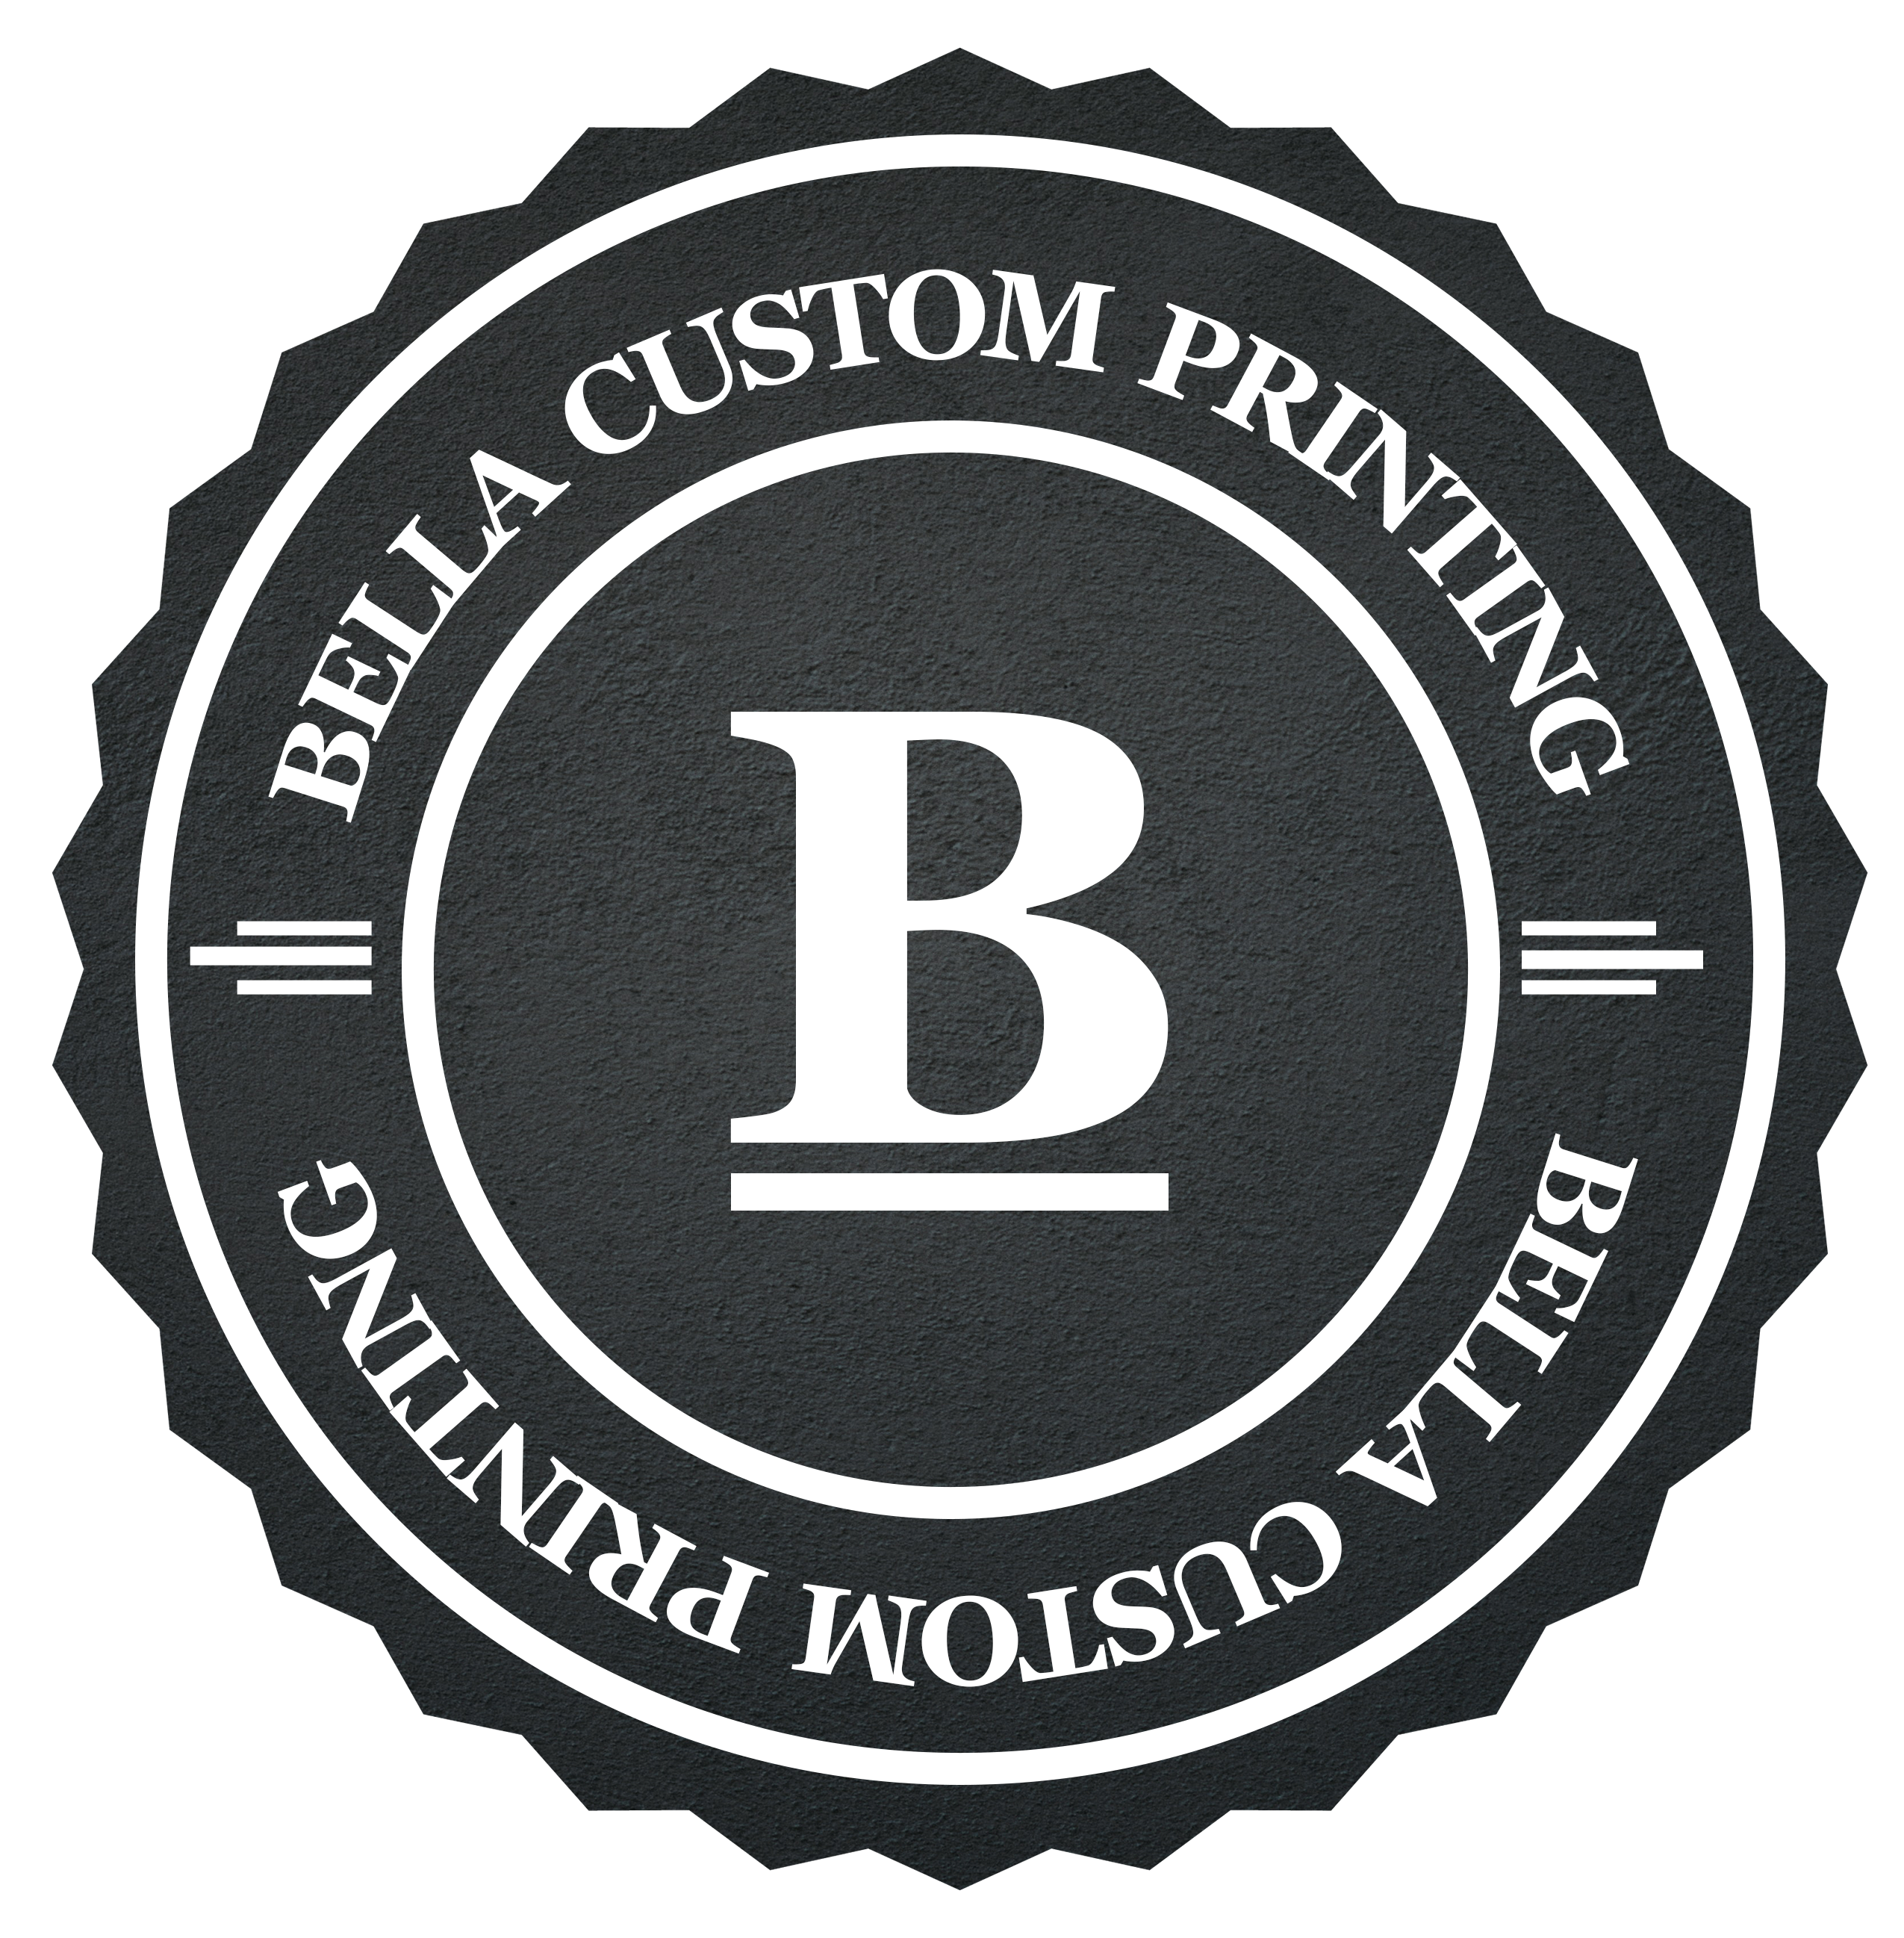 Bella Custom Printing